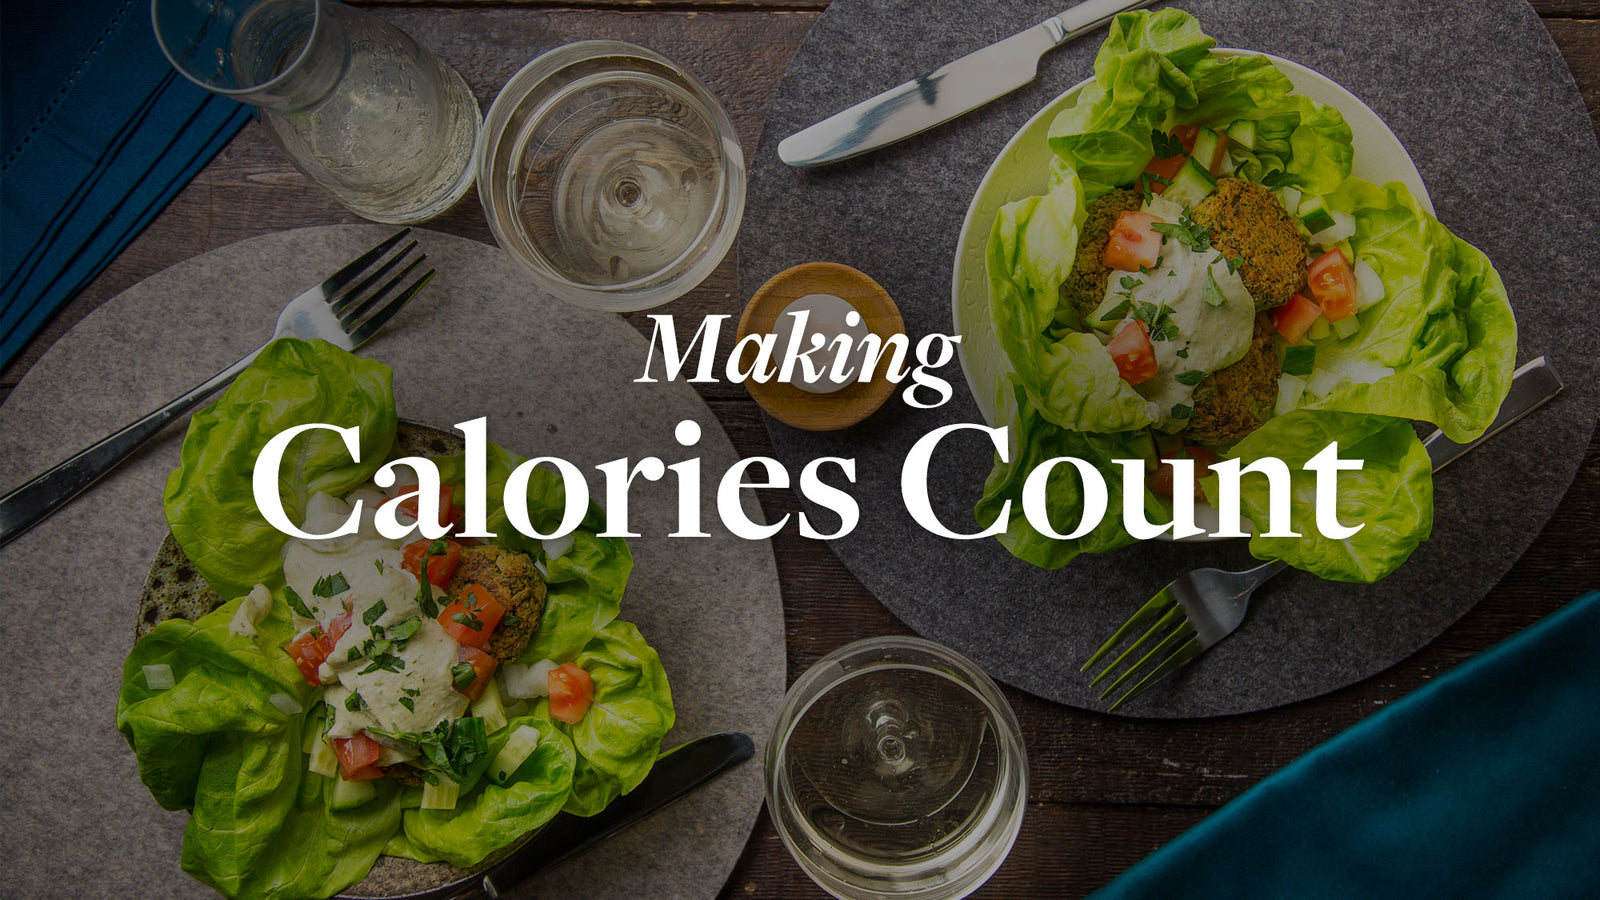 Is Calorie Counting Effective?